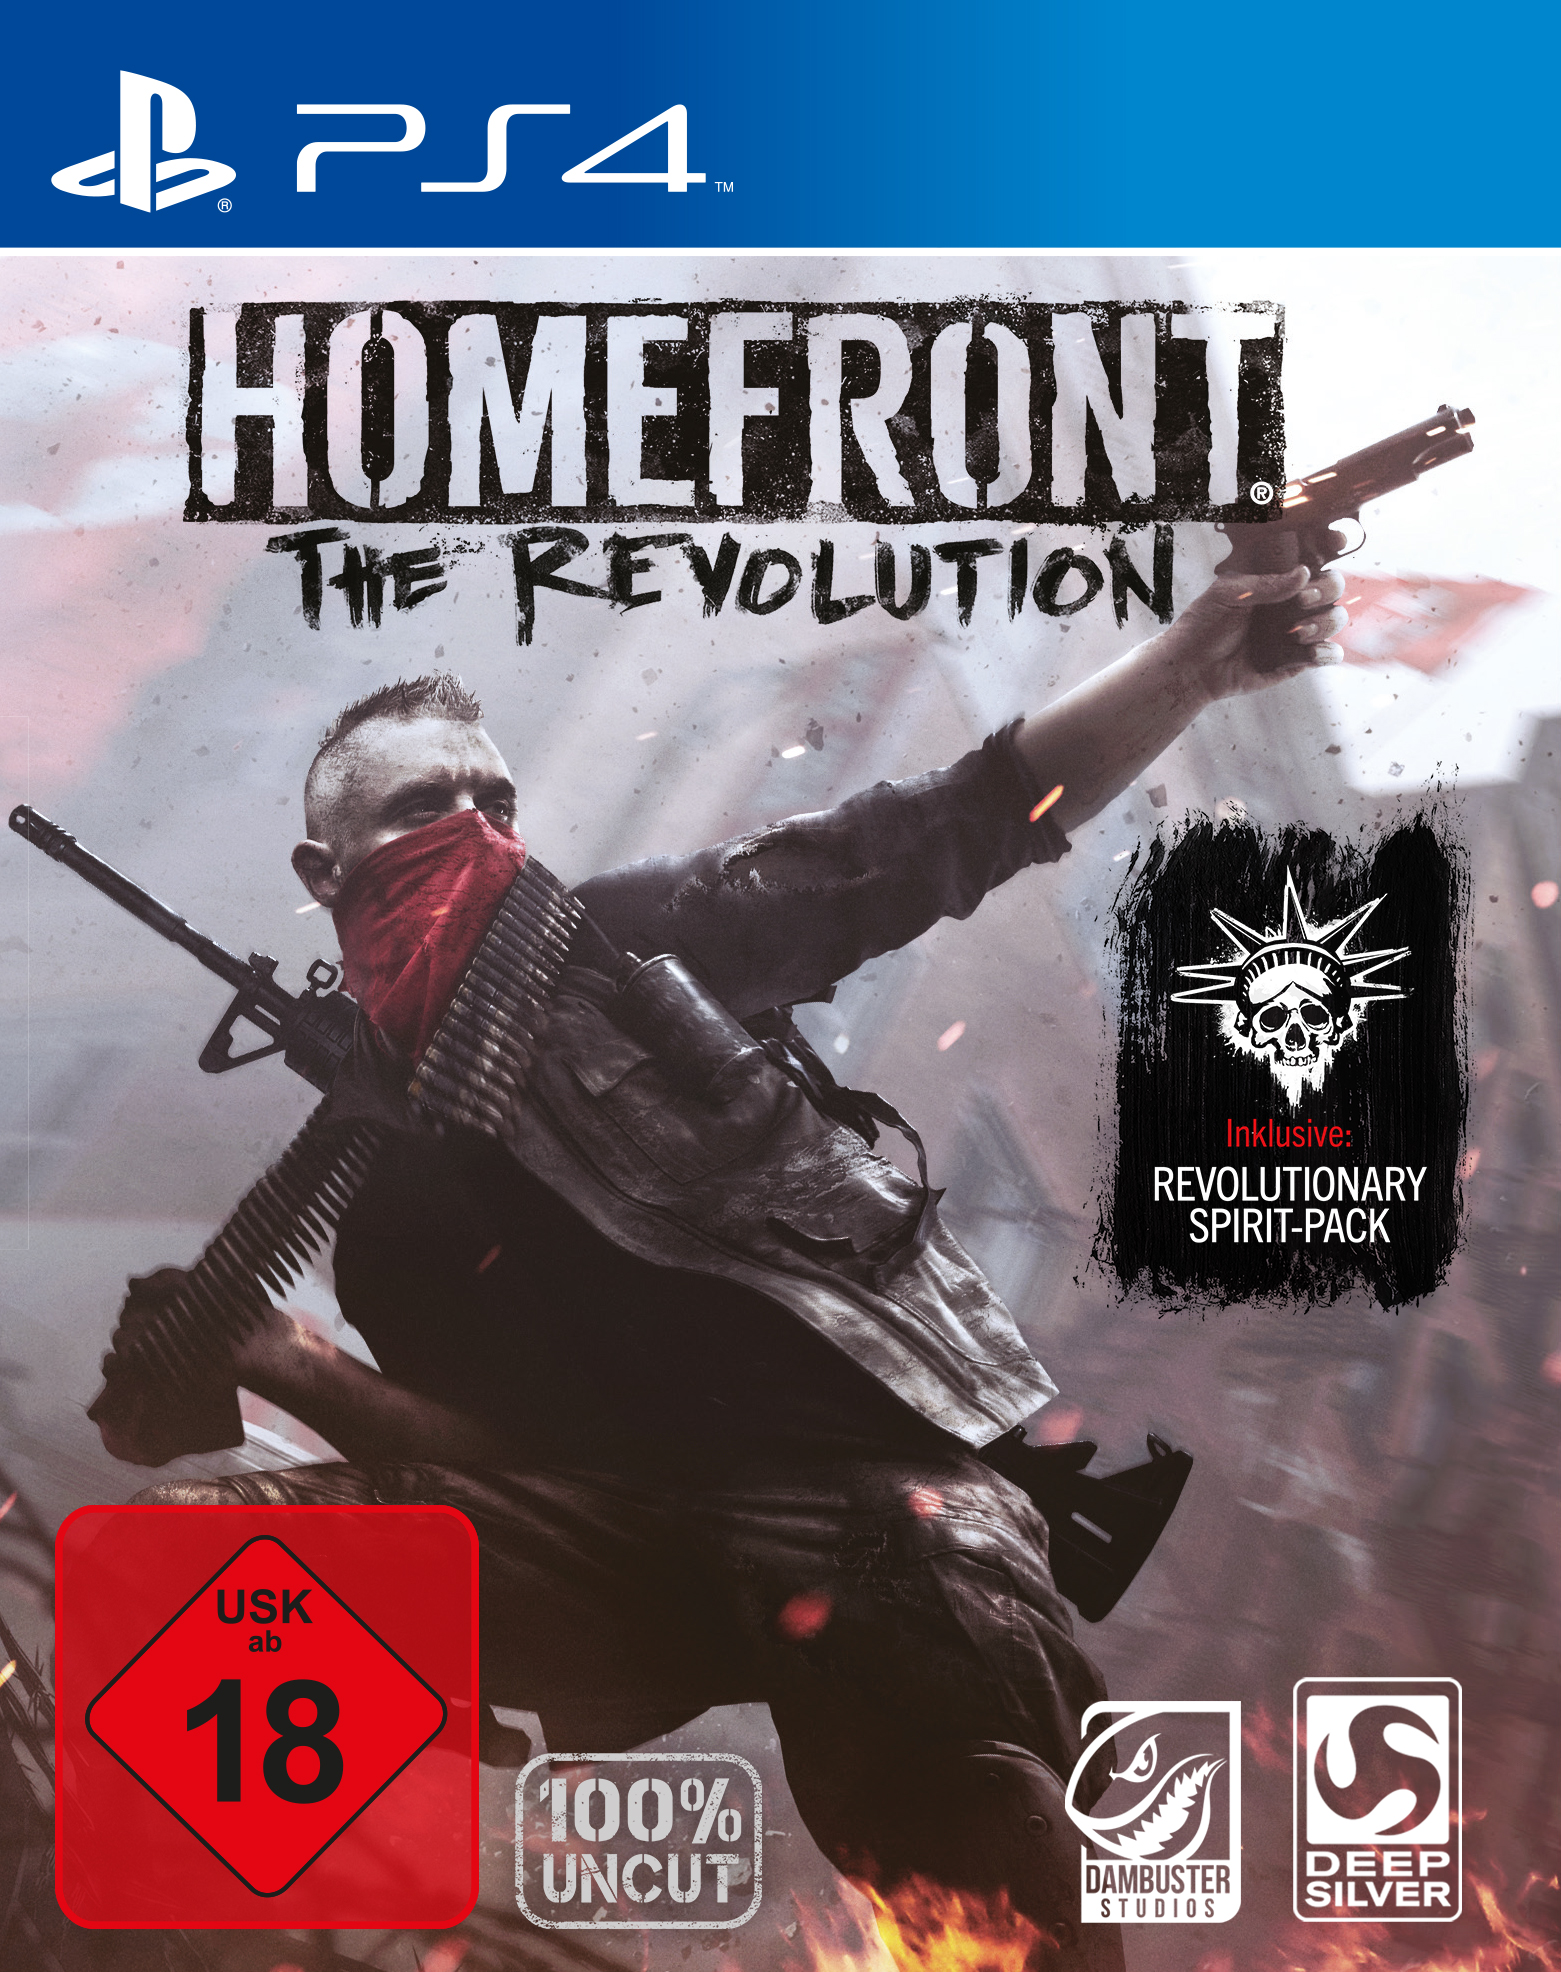 Homefront-the-revolution-usk-cover-packhot-german-nat-games